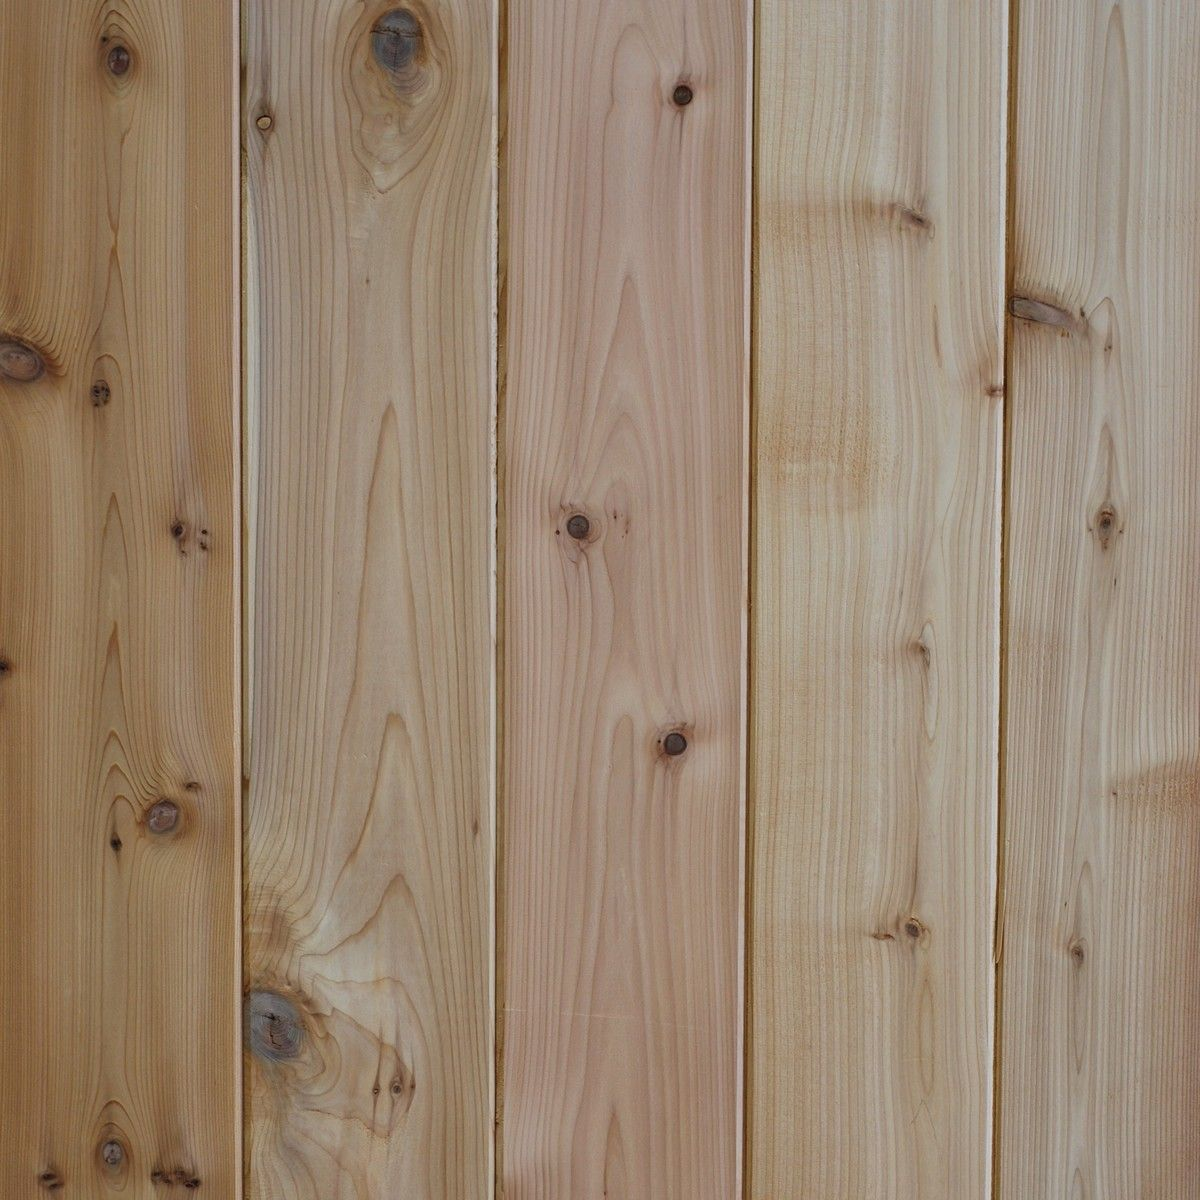 Tongue And Groove Cedar Boards Western Red Cedar Select Tight Knot Tongue Groove Trade Packs 19 X Fence Panels Uk Timber Deck Fence Panels